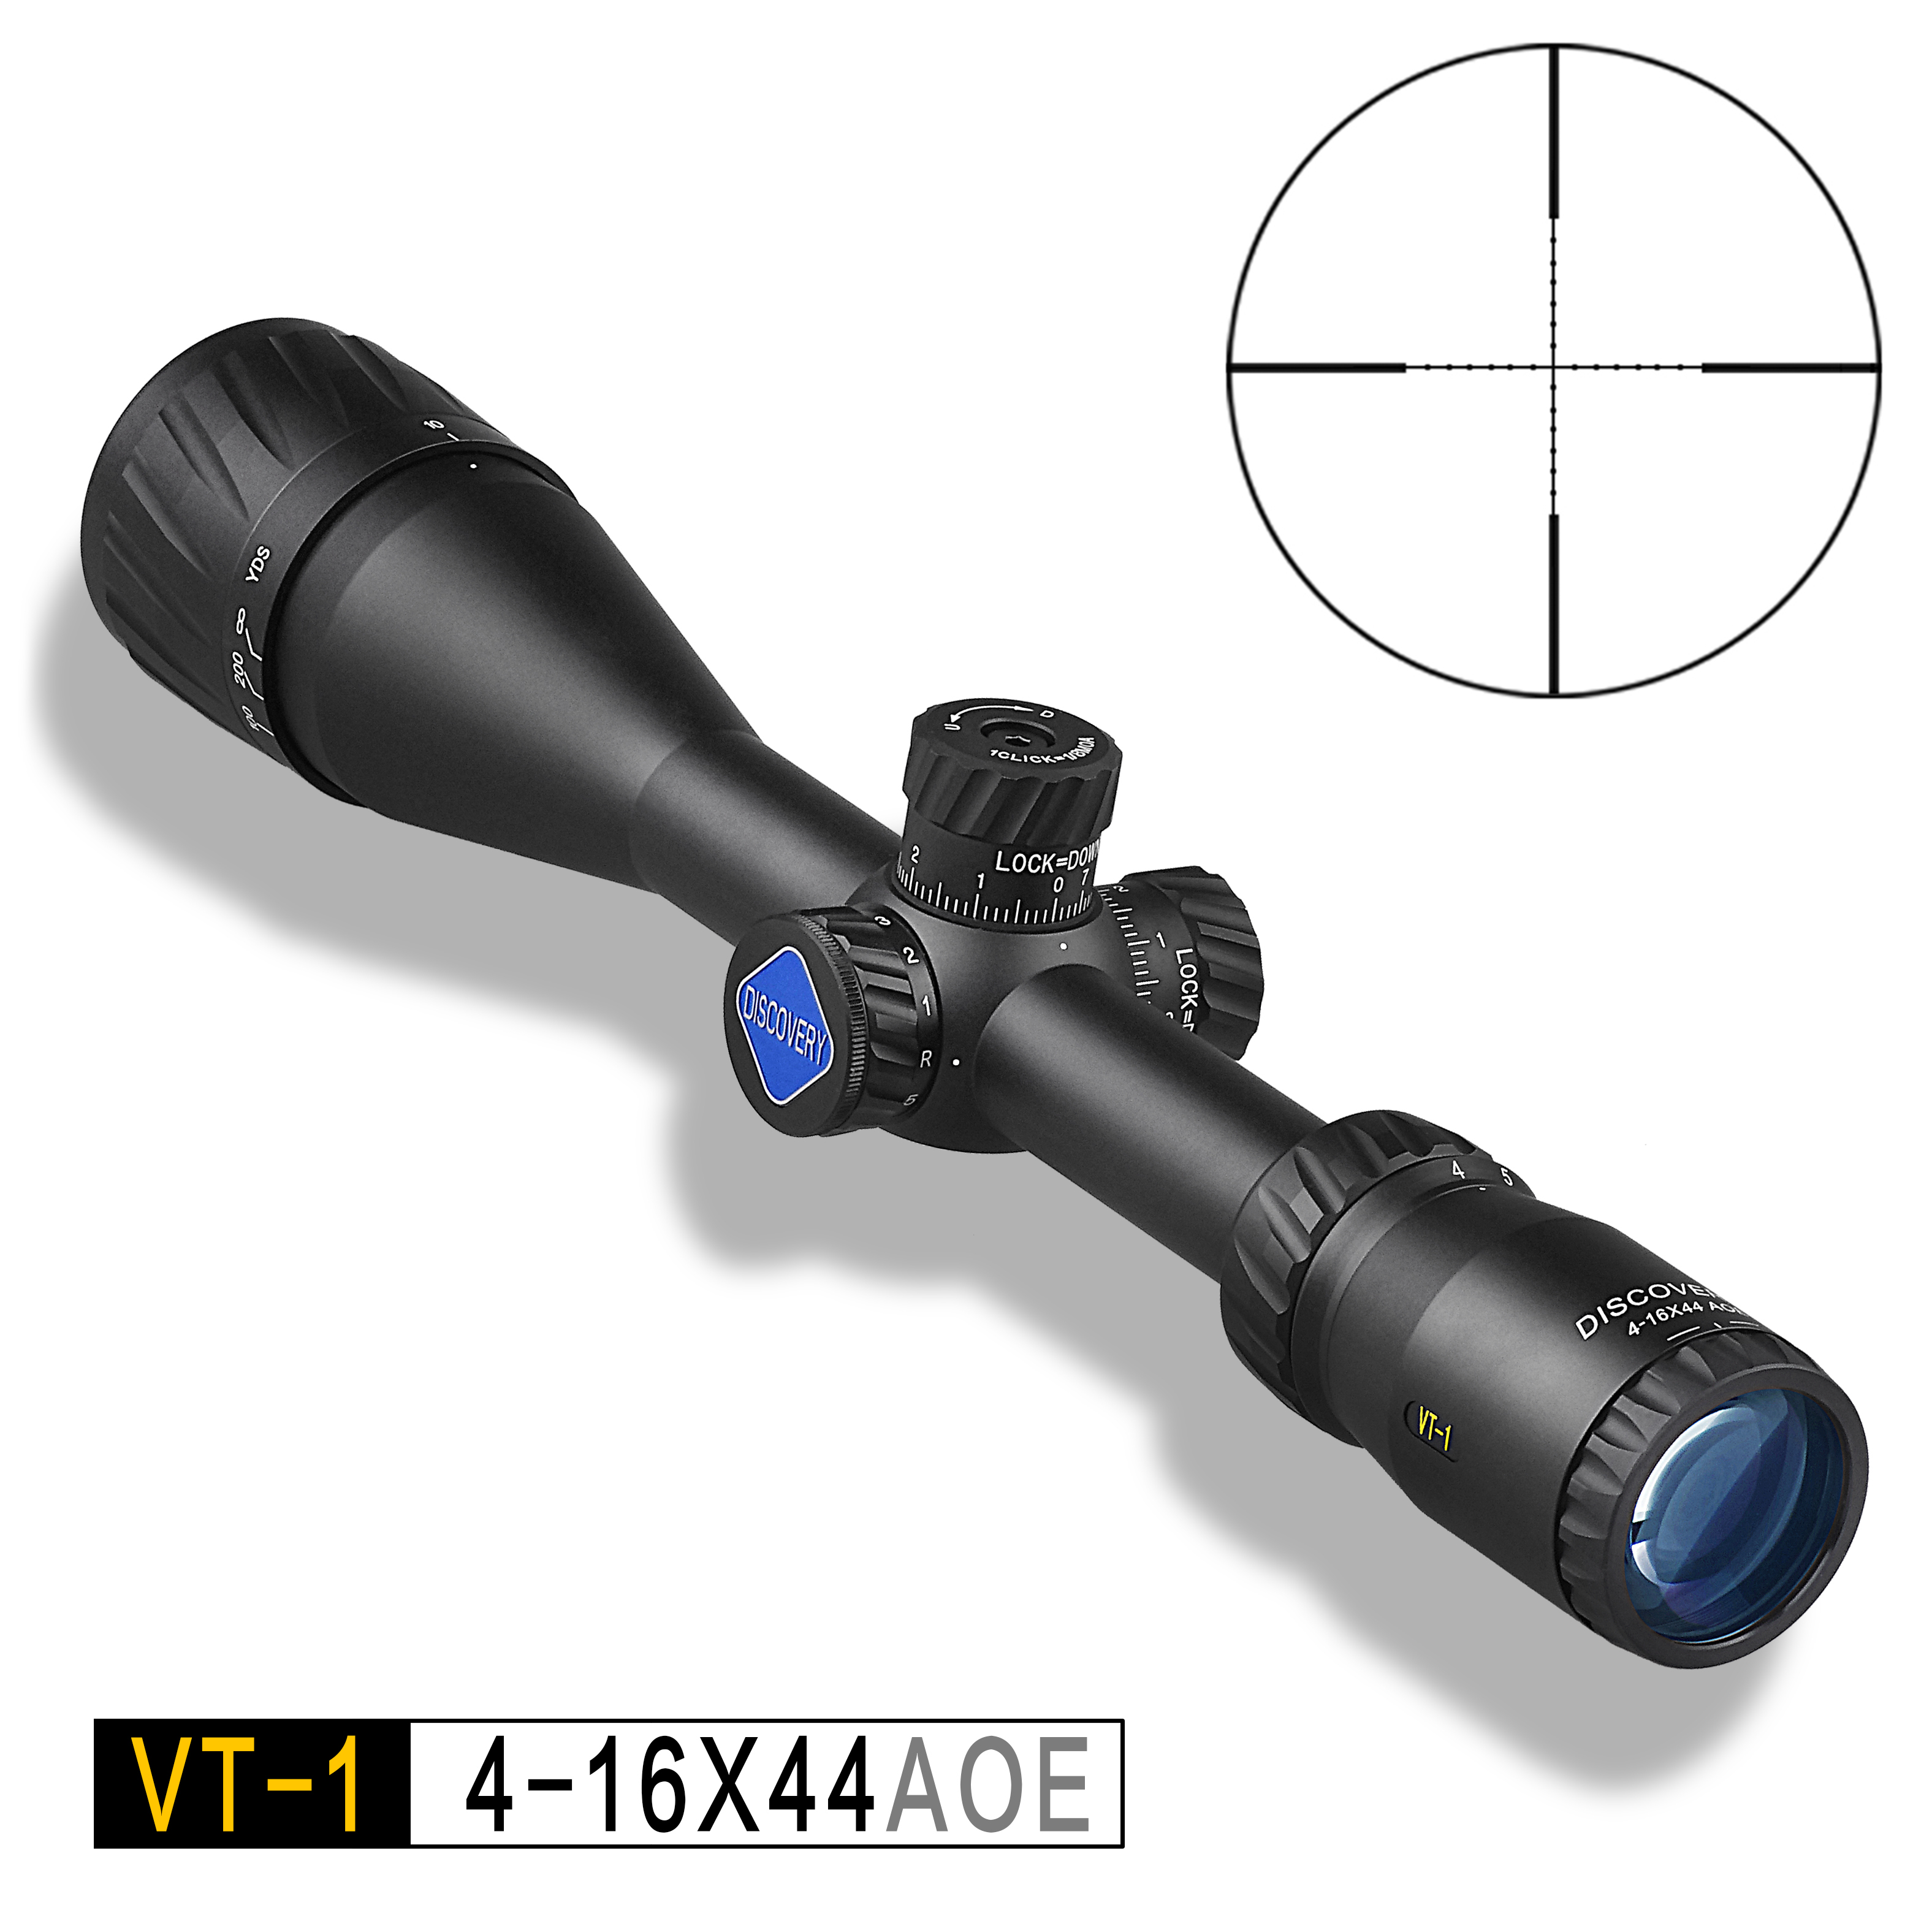 Hunting Riflescope DISCOVERY VT 1 4 16X44 AOE with Red Green Illuminated Mil Dot Reticle Night